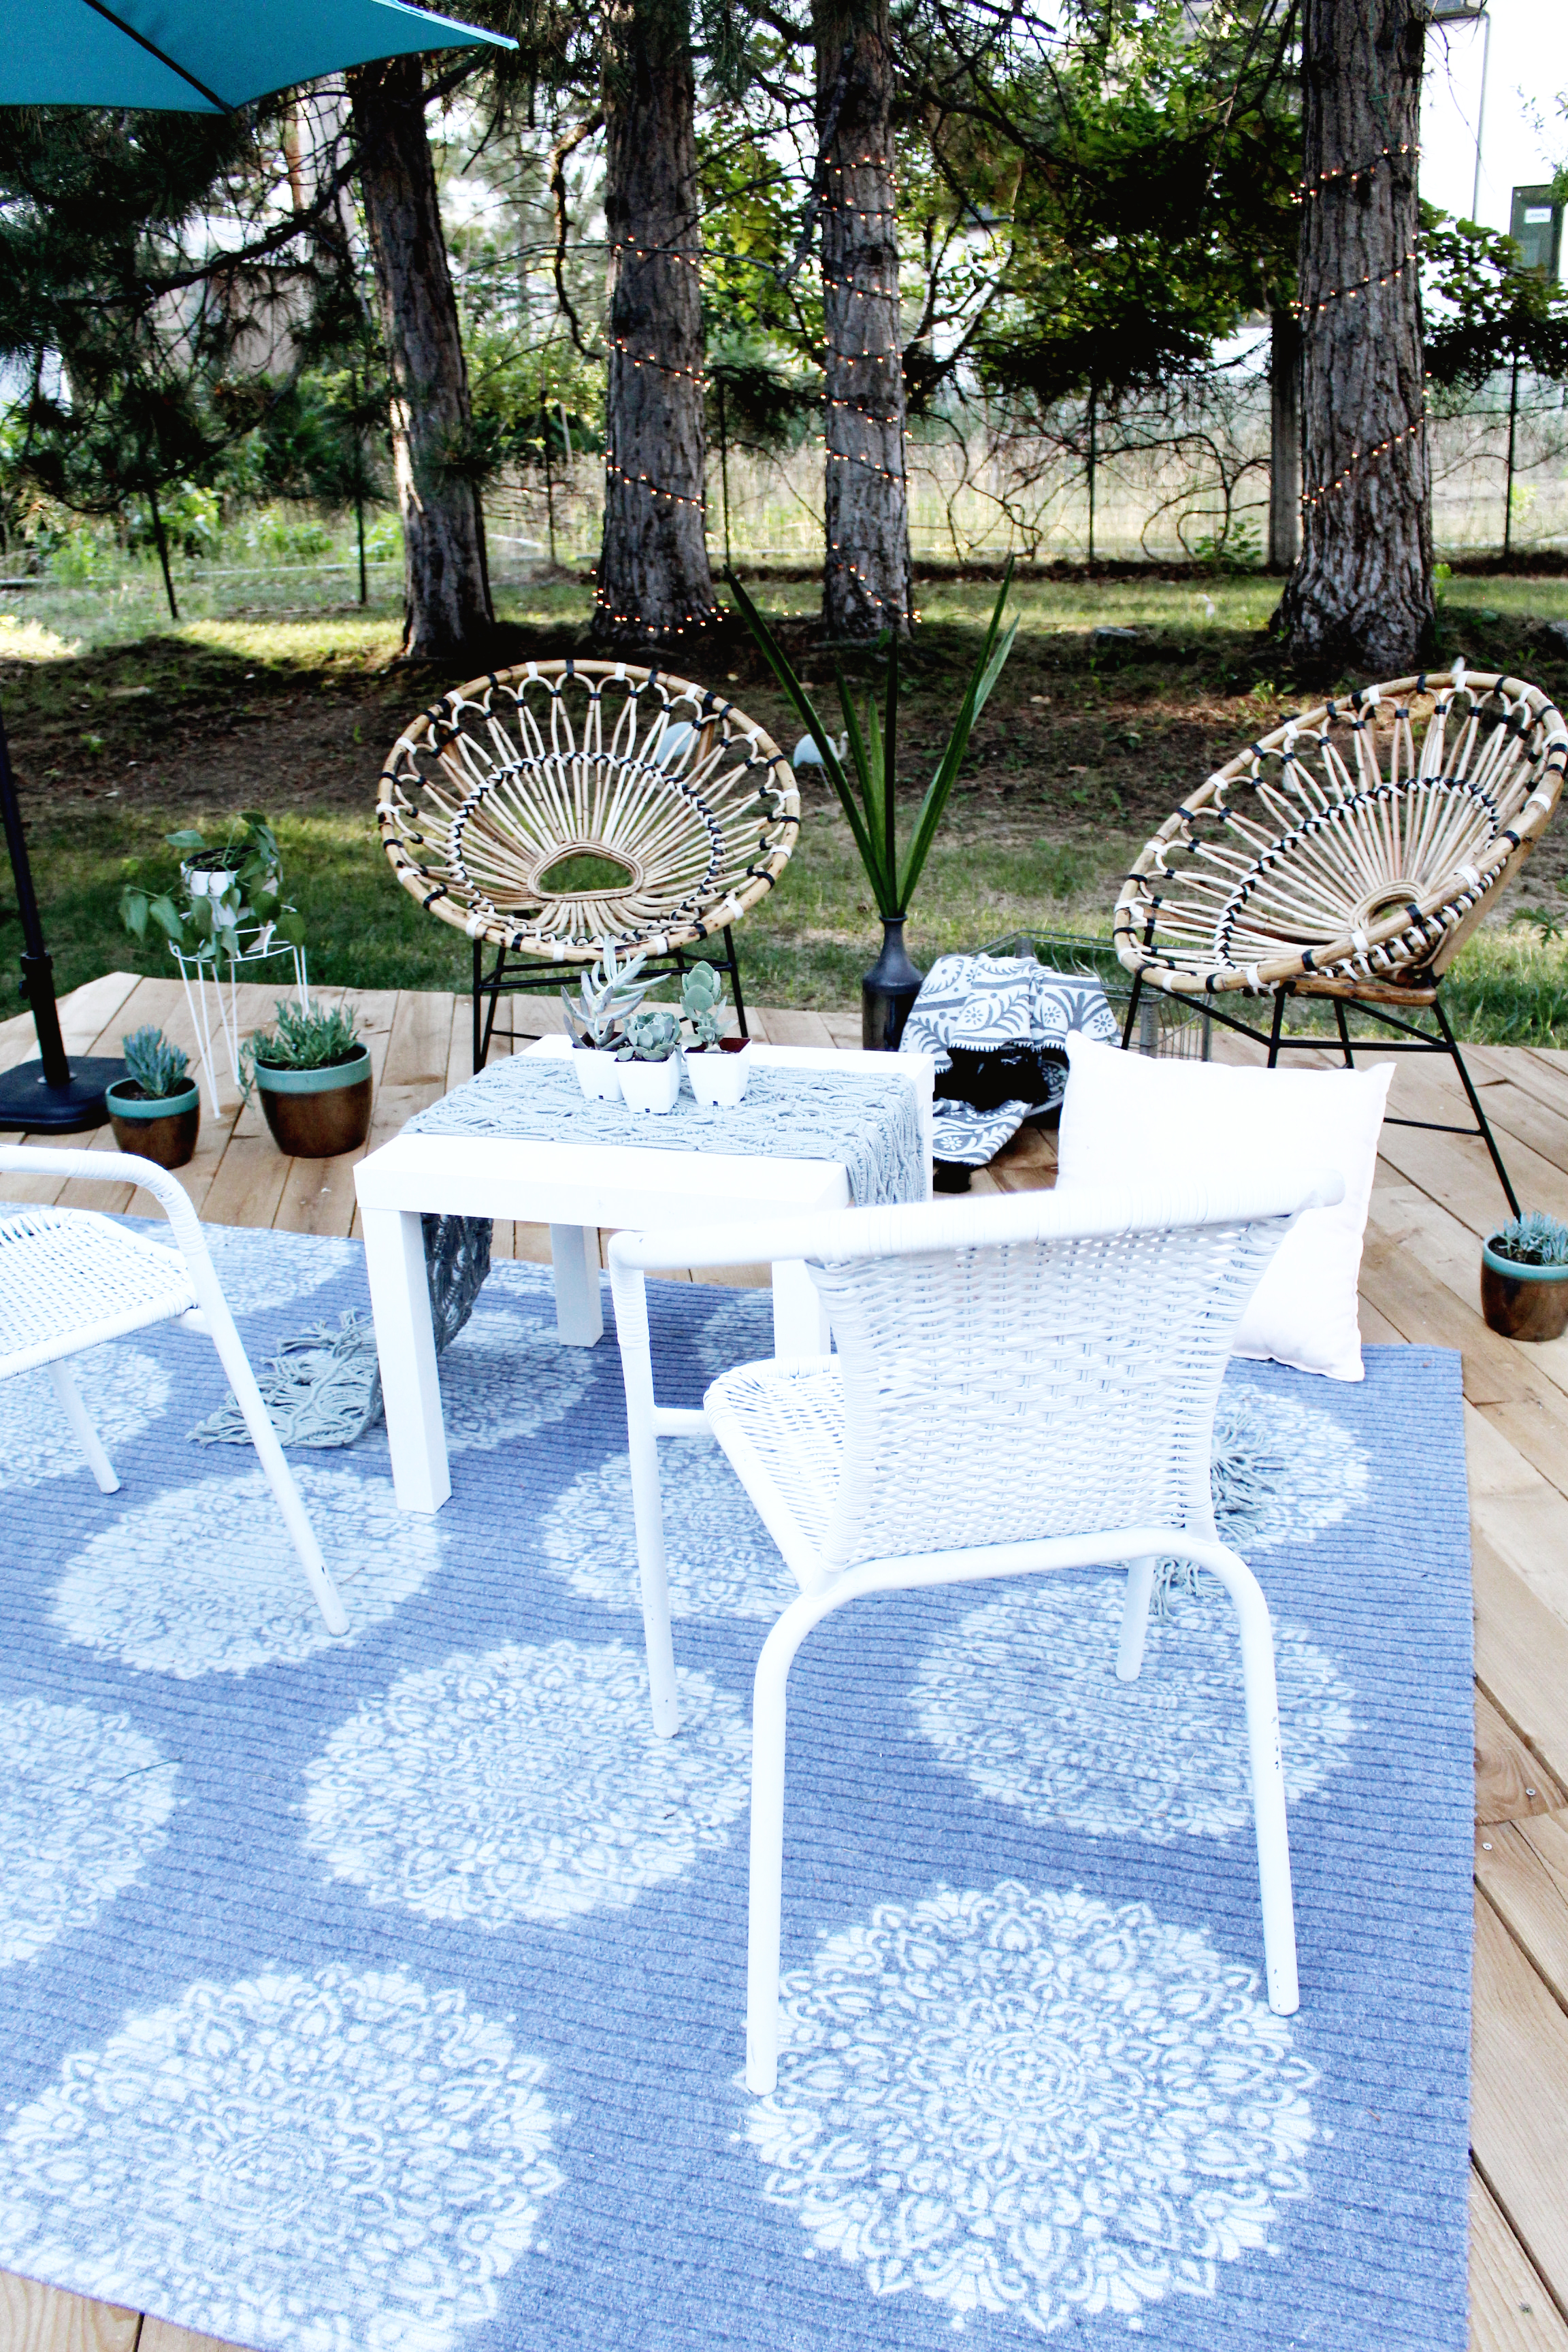 Diy Outdoor Rug With Spray Paint And Stencil Revolution A